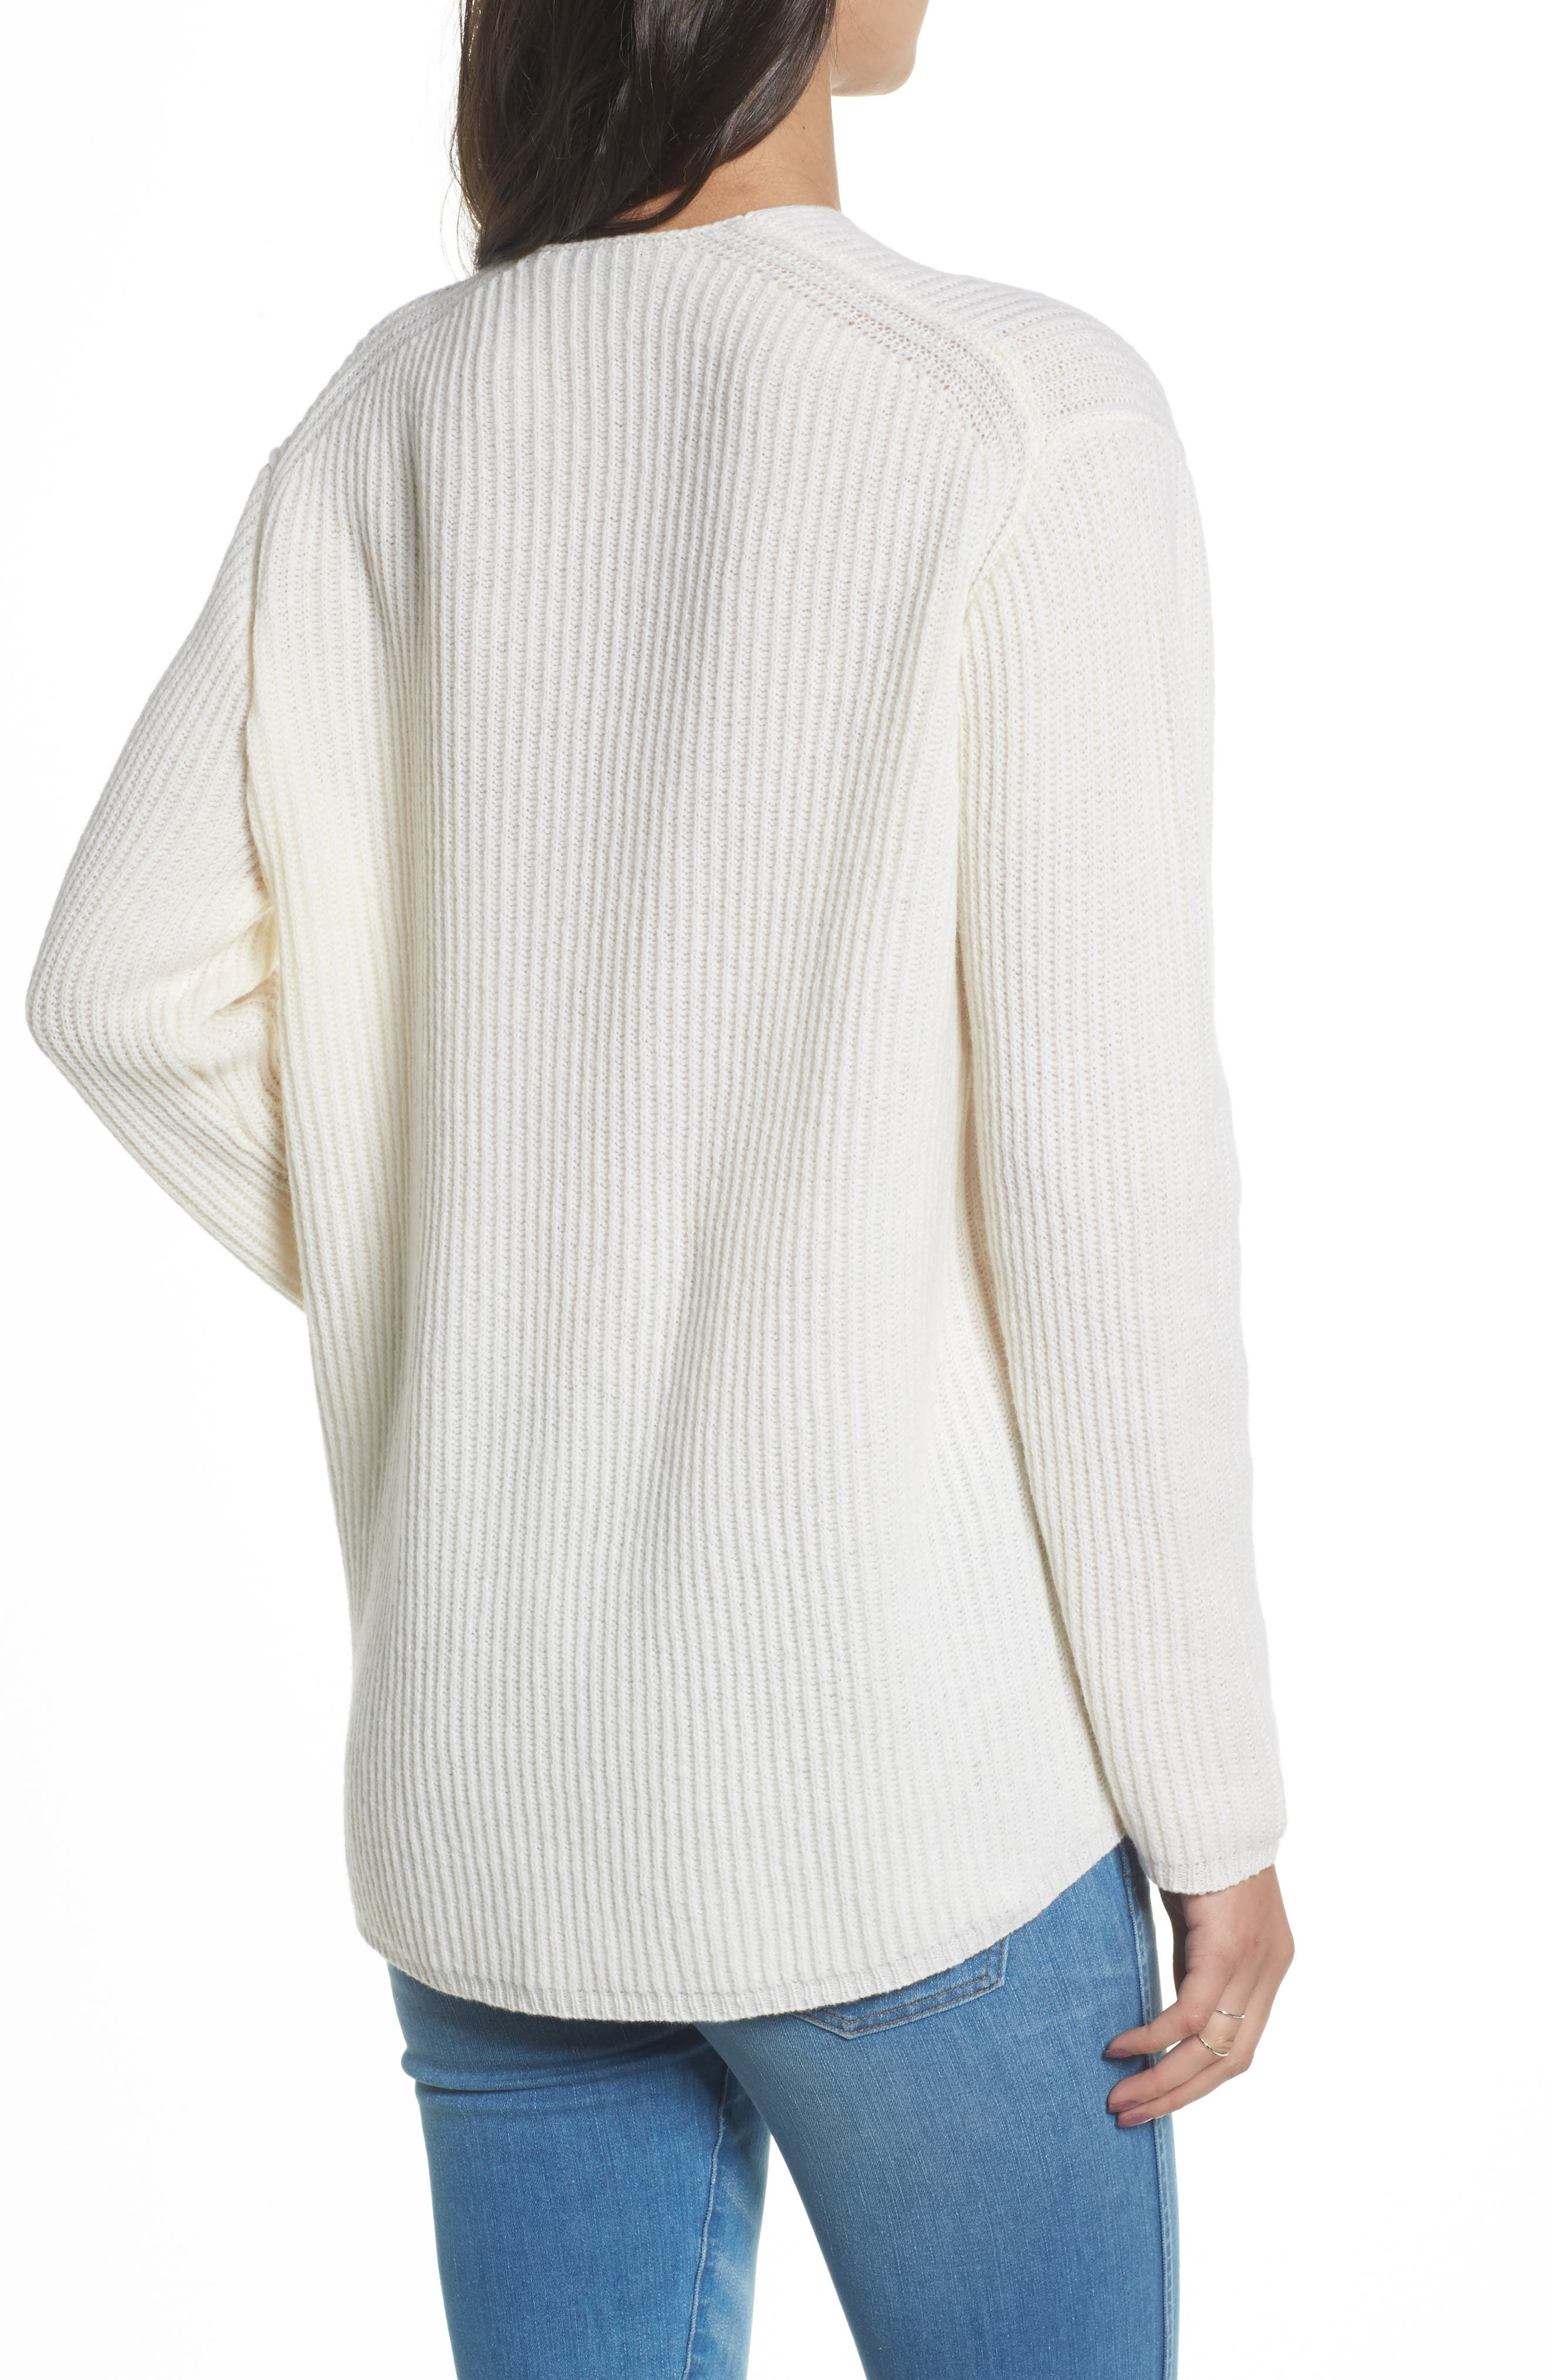 Woodside Pullover Sweater,                             Alternate thumbnail 2, color,                             Antique Cream